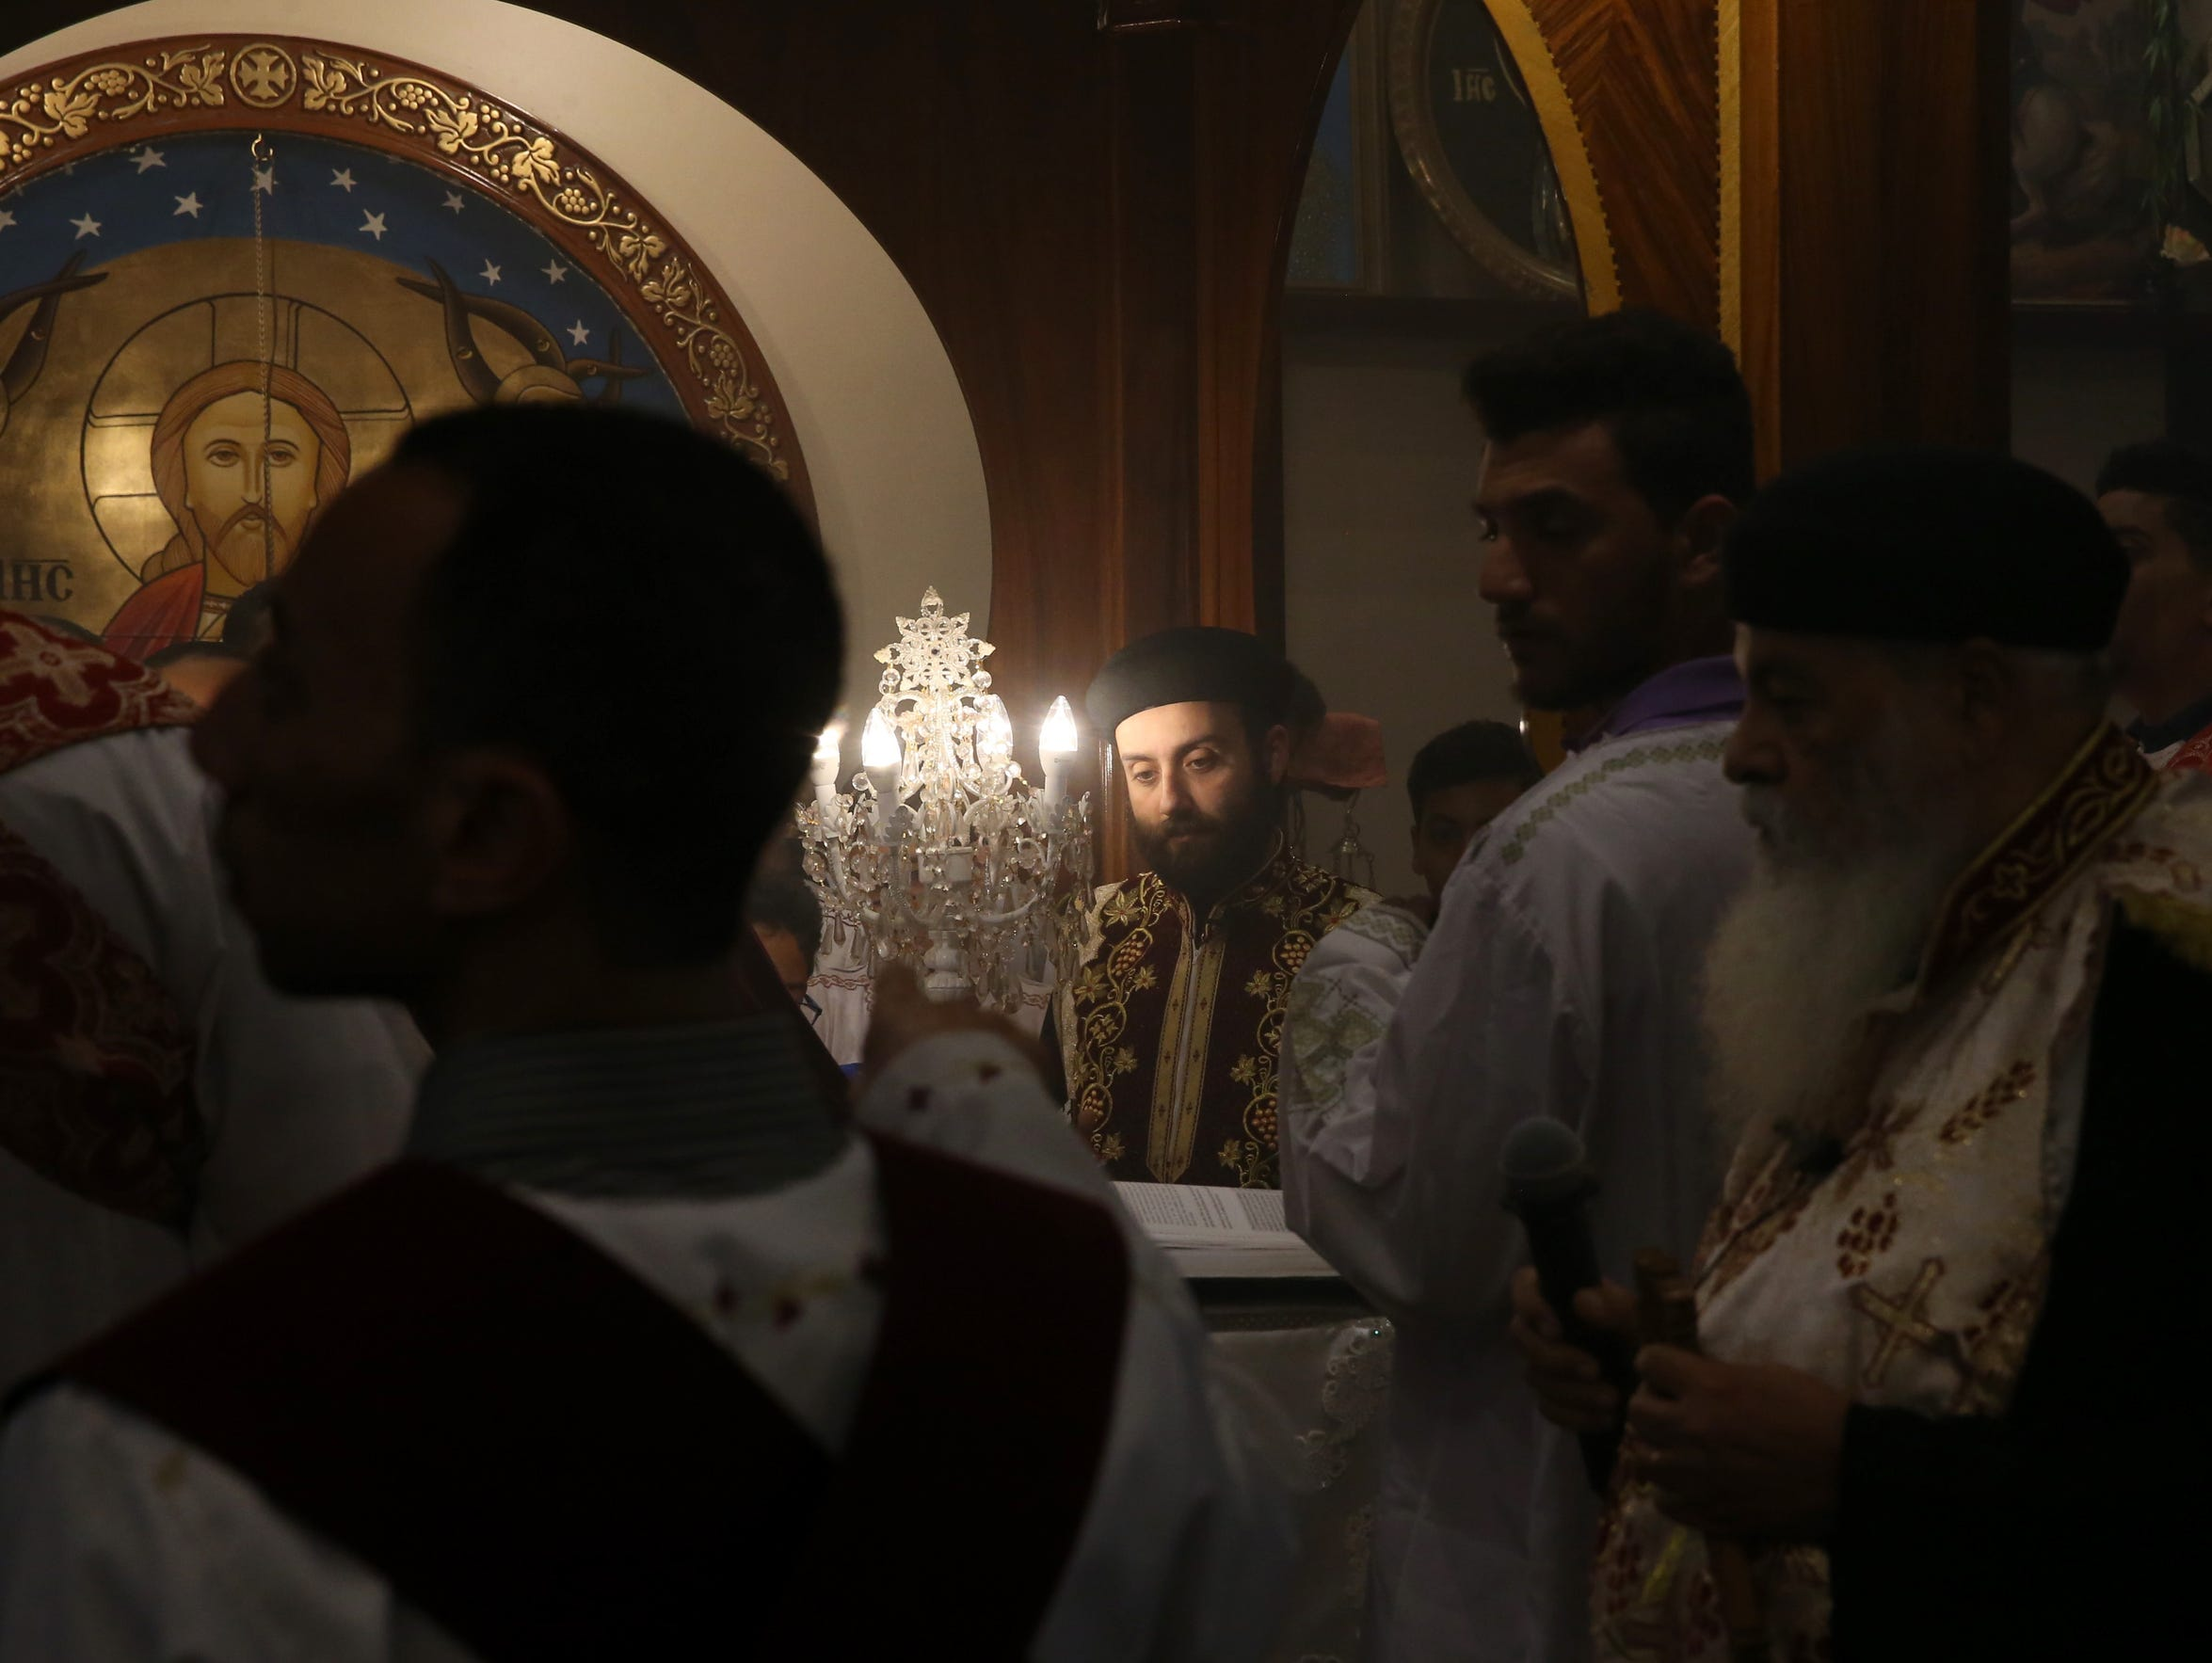 Father Jerome, center, performs a ceremony surrounded by deacons at the St. Mary & St. George Coptic Orthodox Church as they observe Good Friday at their church on April 14, 2017.